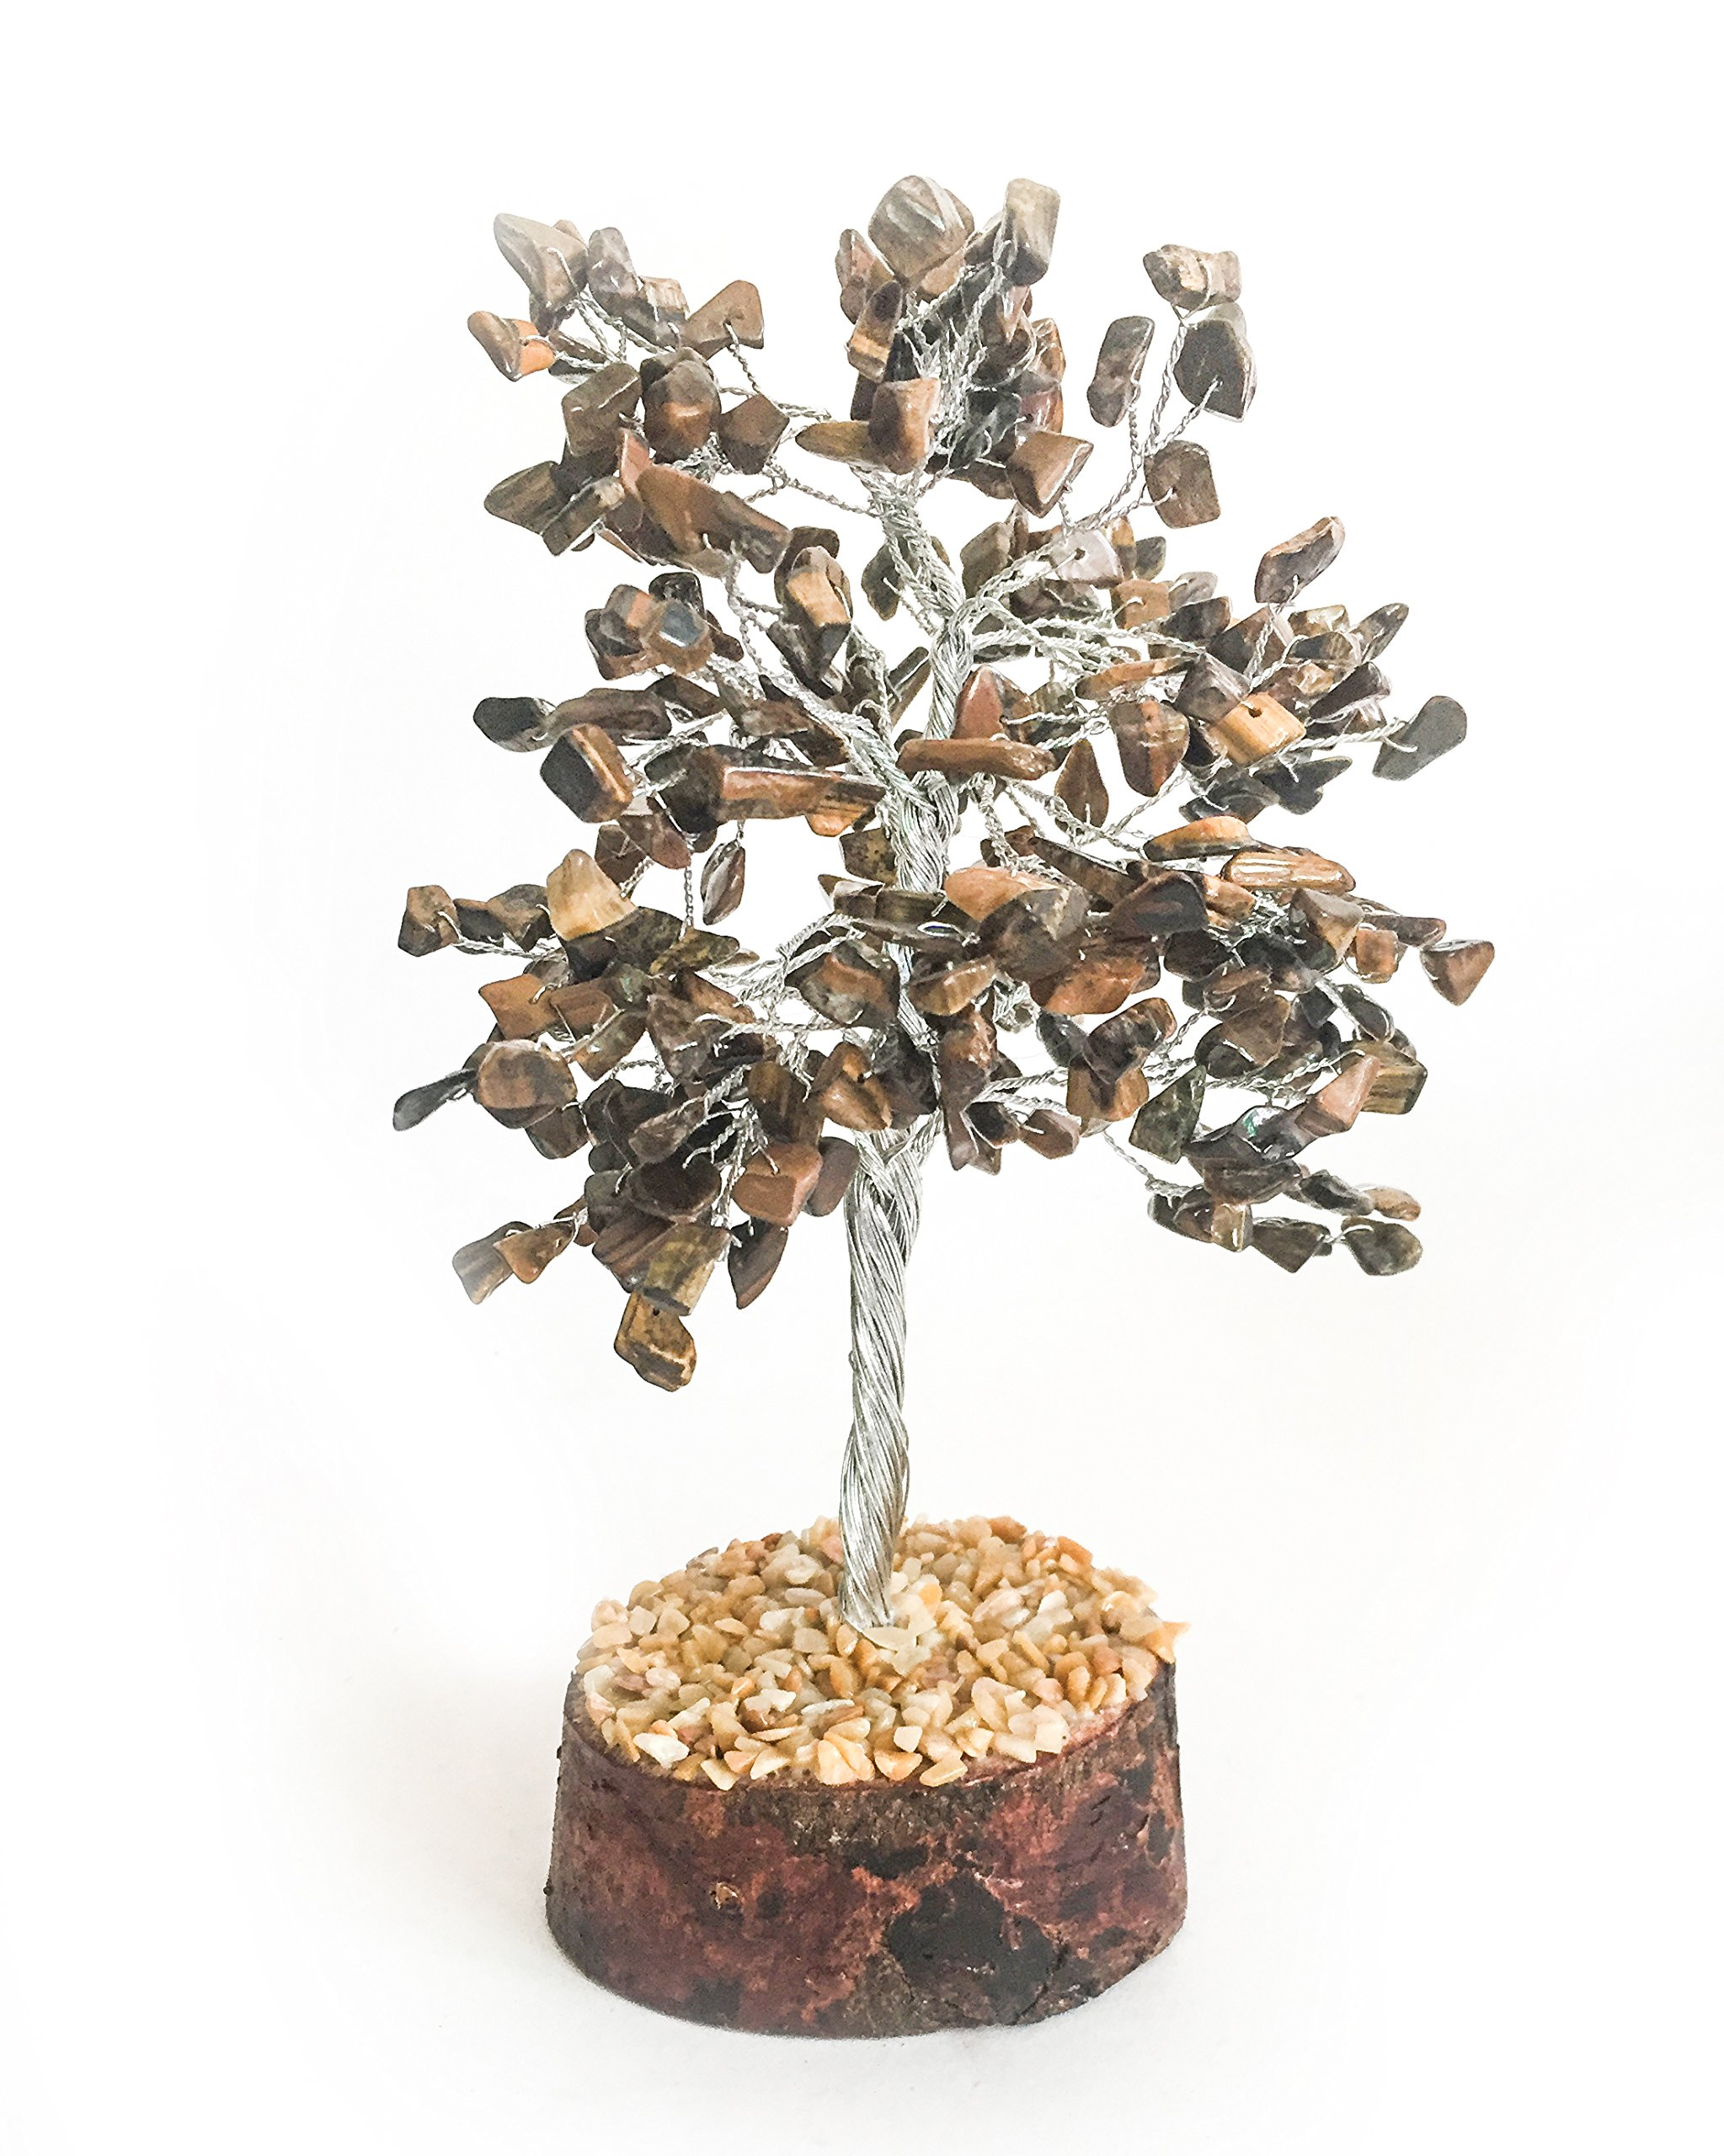 Crocon Natural Color Healing Gemstone Crystal Bonsai Fortune Money Tree for Good Luck, Wealth & Prosperity Spiritual Gift size 10 INCH (Silver Wire) (Tiger eye)